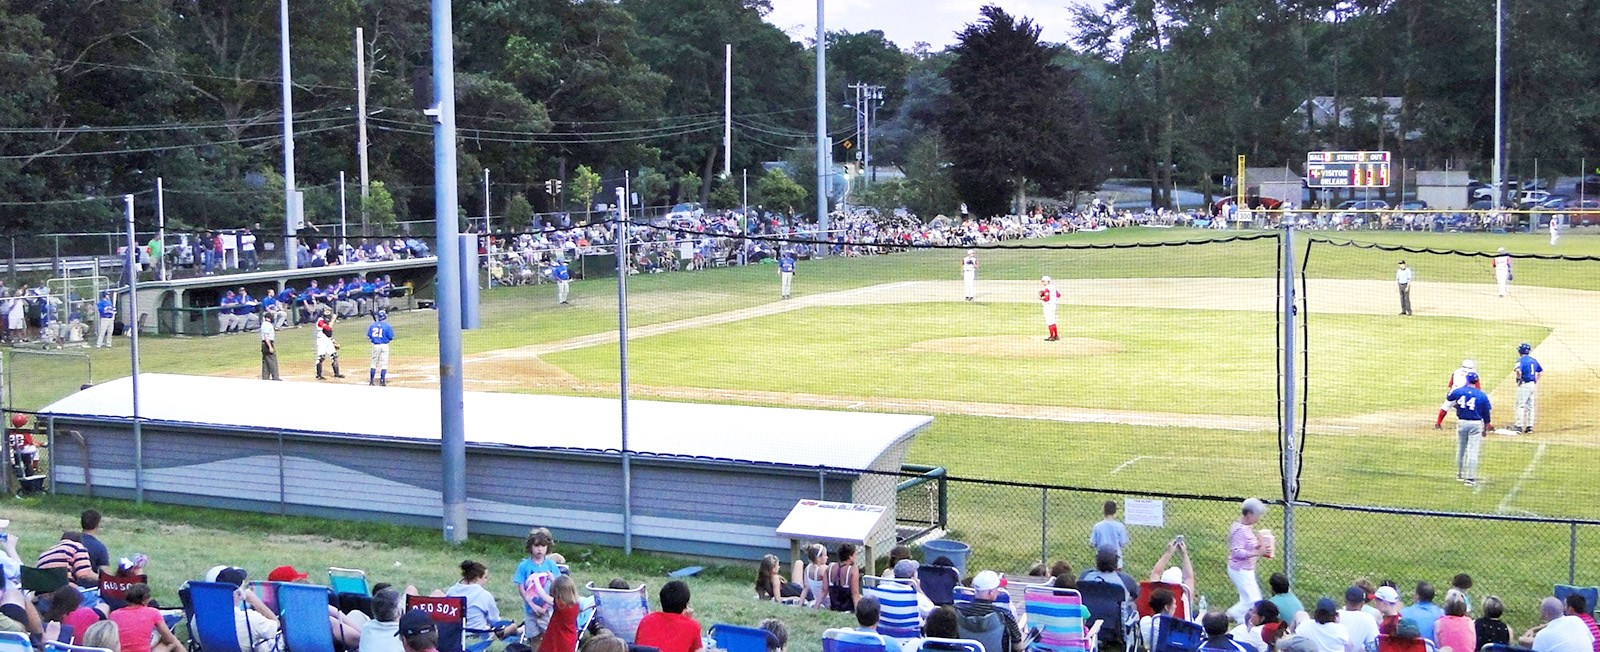 On our current Red Sox roster, there are 9 players who won our hearts right here on Cape Cod as CCBL players.